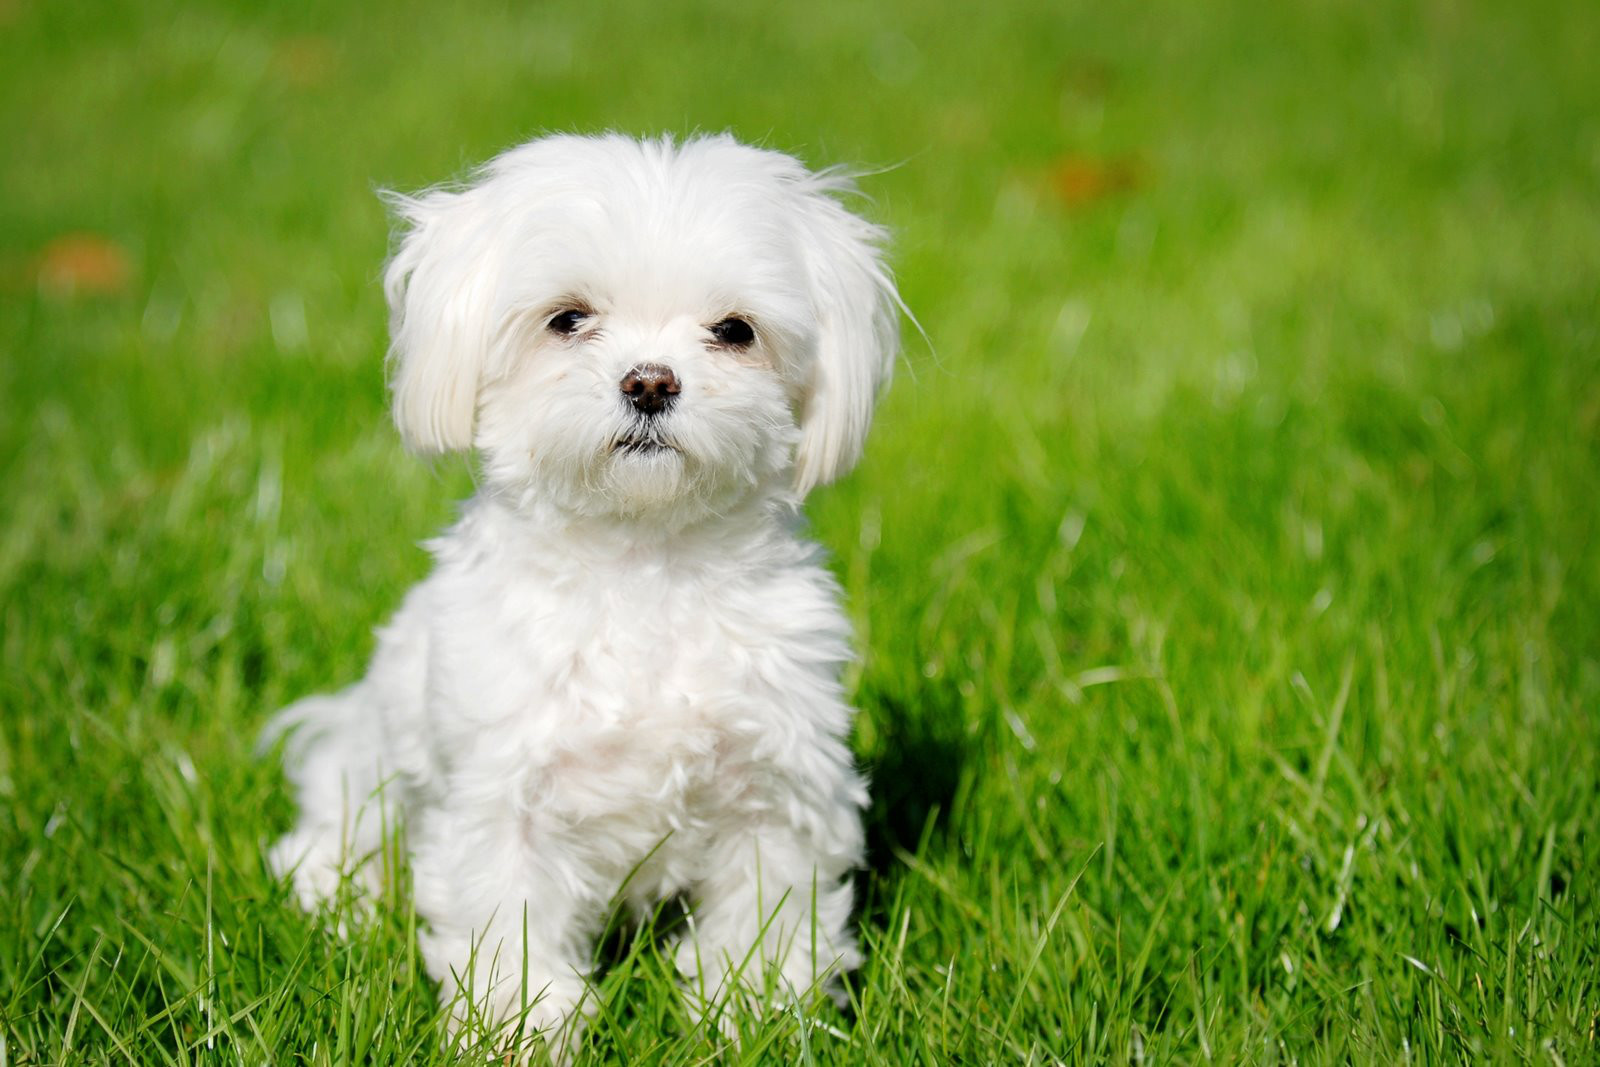 Major Puppy Mill Victories in the U.S.